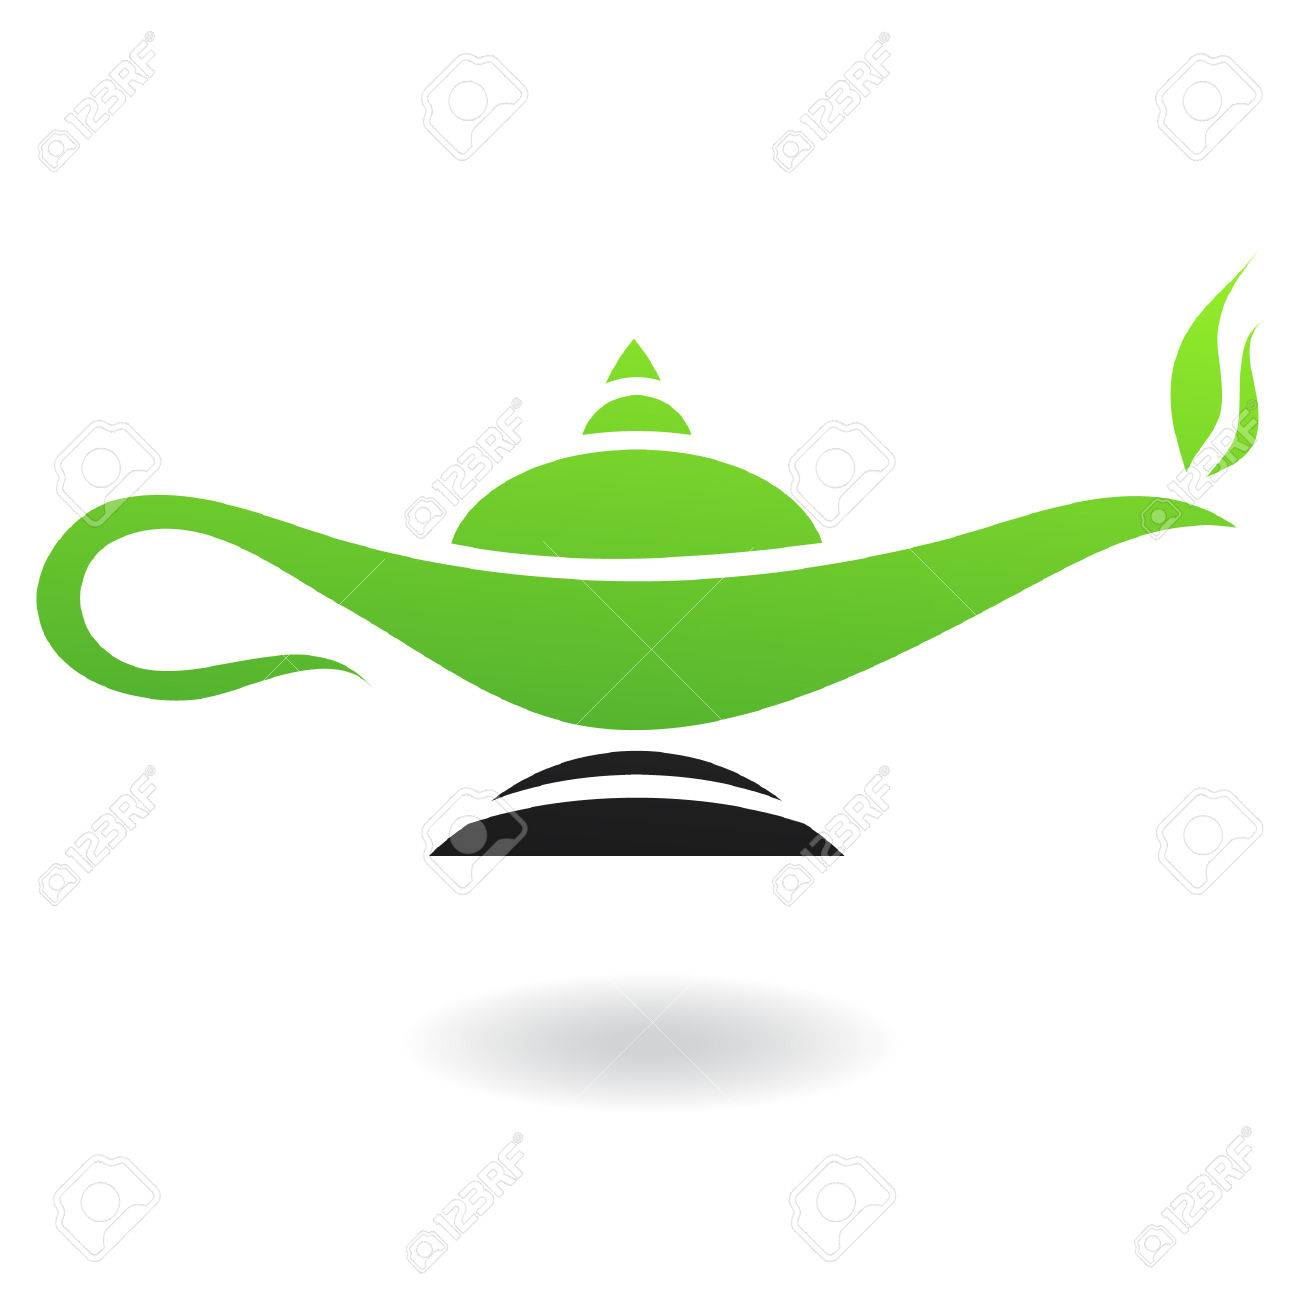 Line art green and black magic lamp isolated on white - 7276515